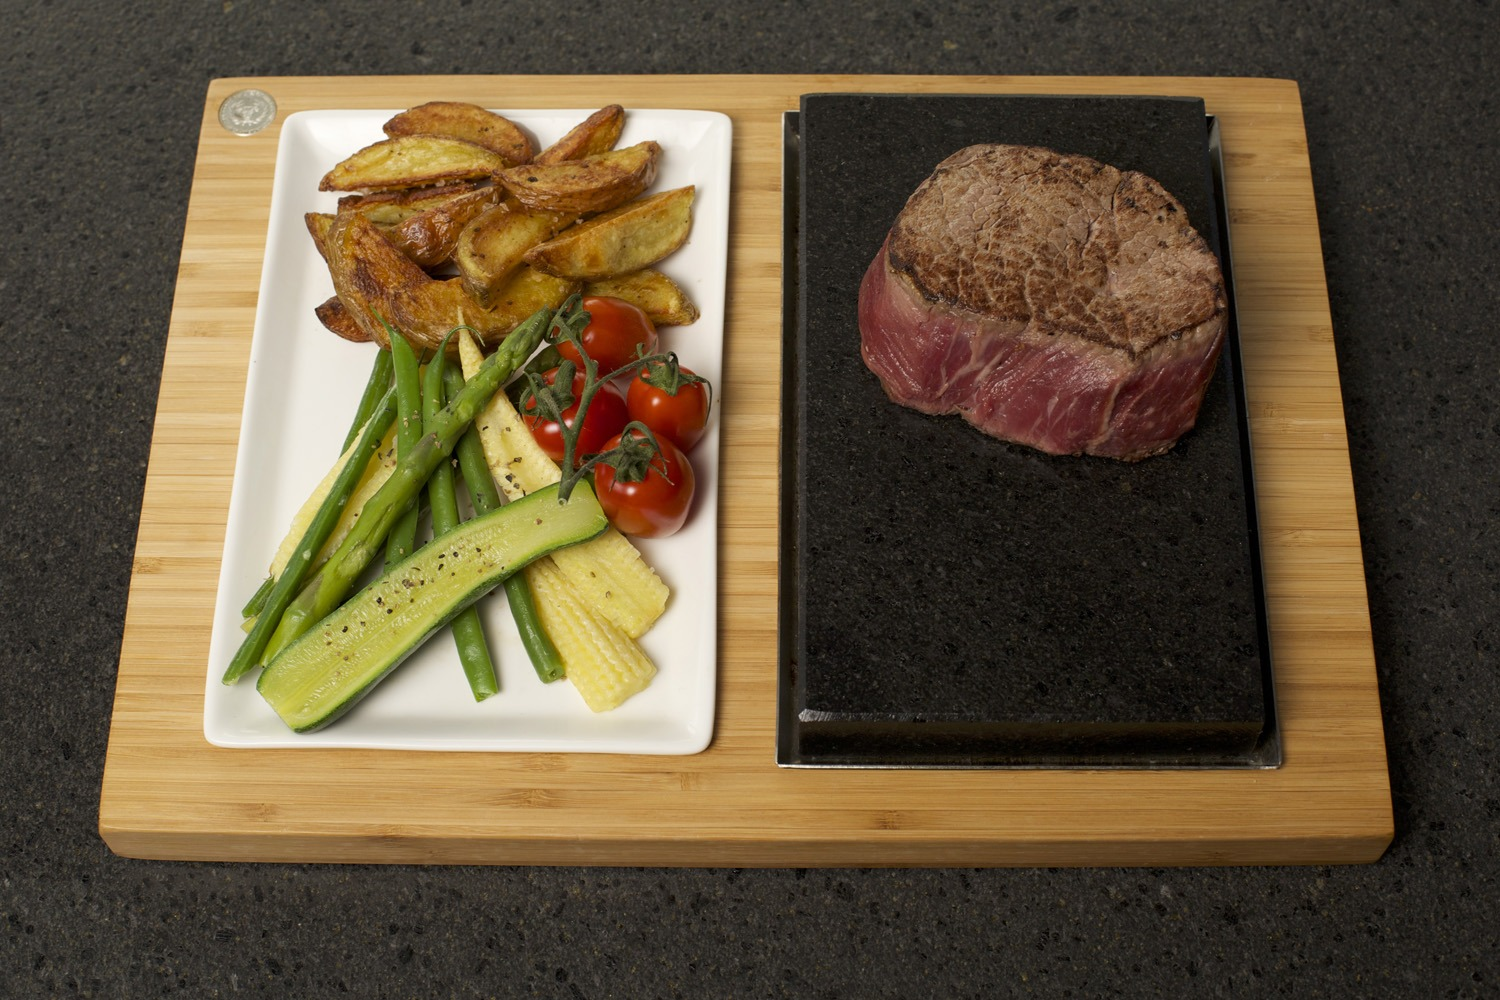 Fillet Steak, Potato Wedges & Seasonal Vegetables on the SteakStones Steak & Sides Set